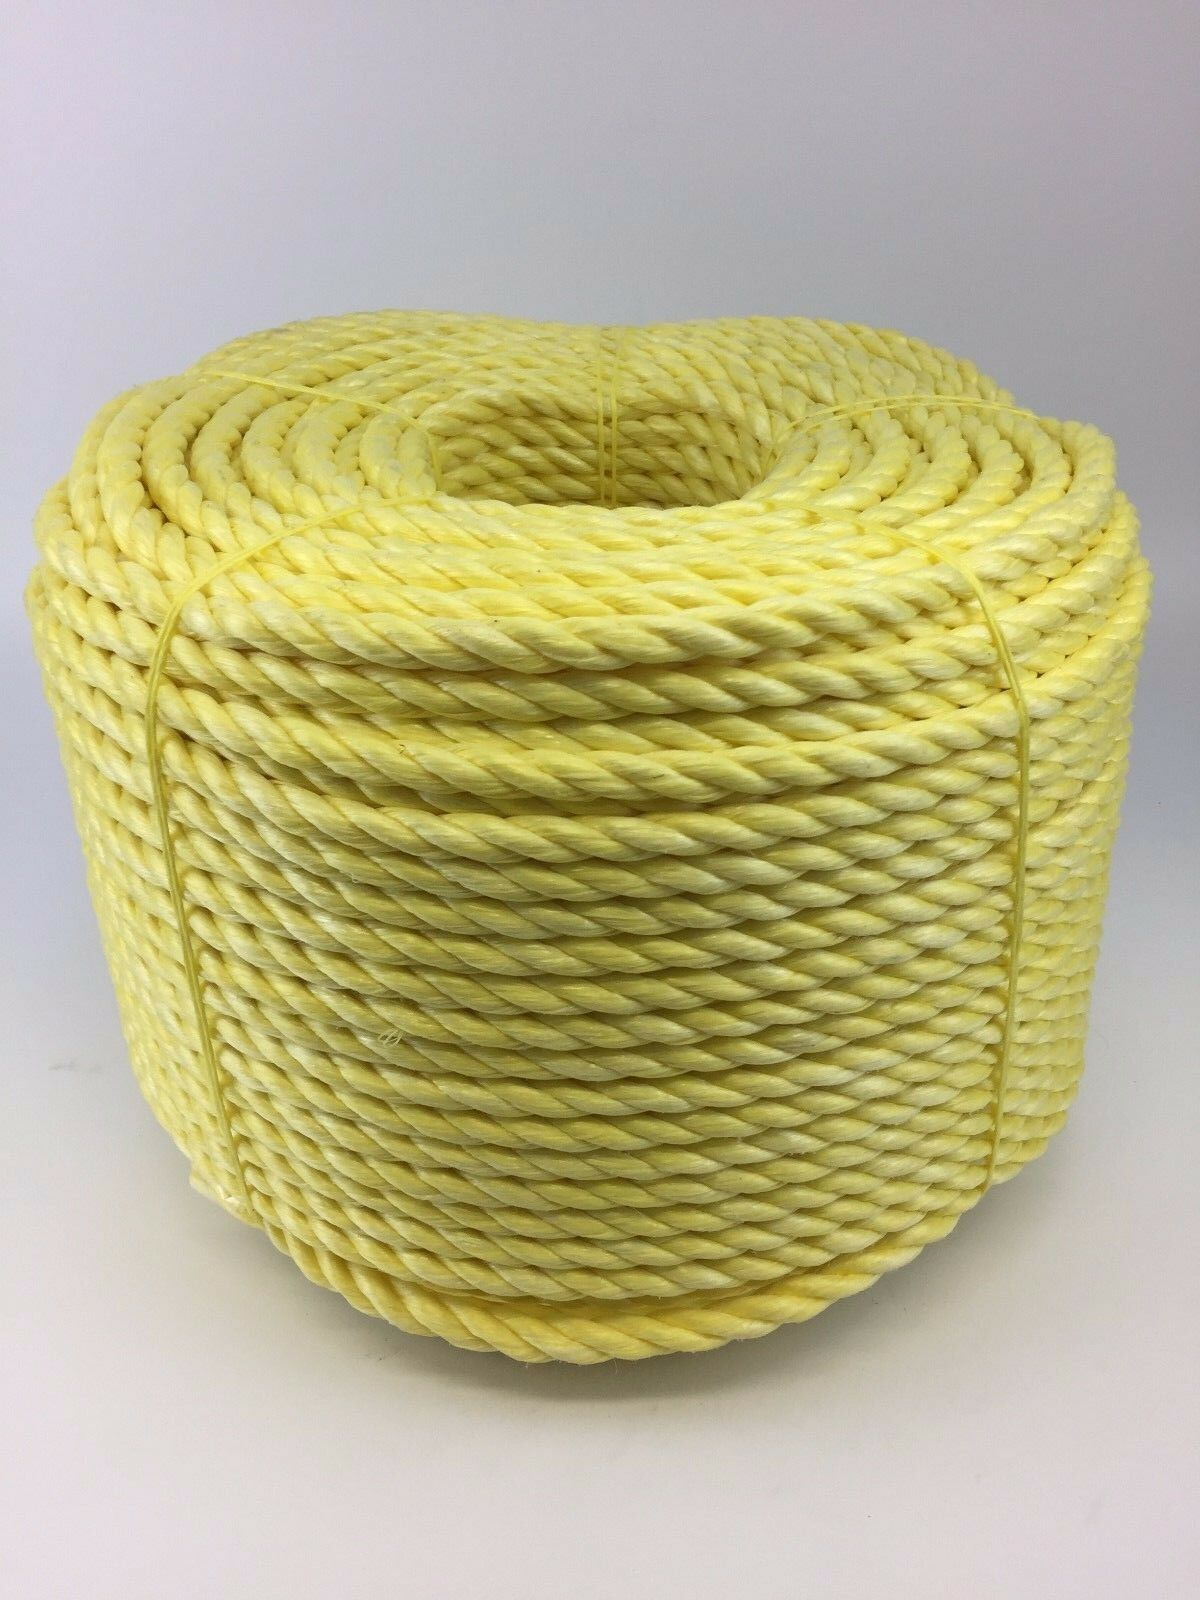 14mm Yellow Polypropylene Rope x 220m Coil, Yellow Poly Rope Coils, Polyrope